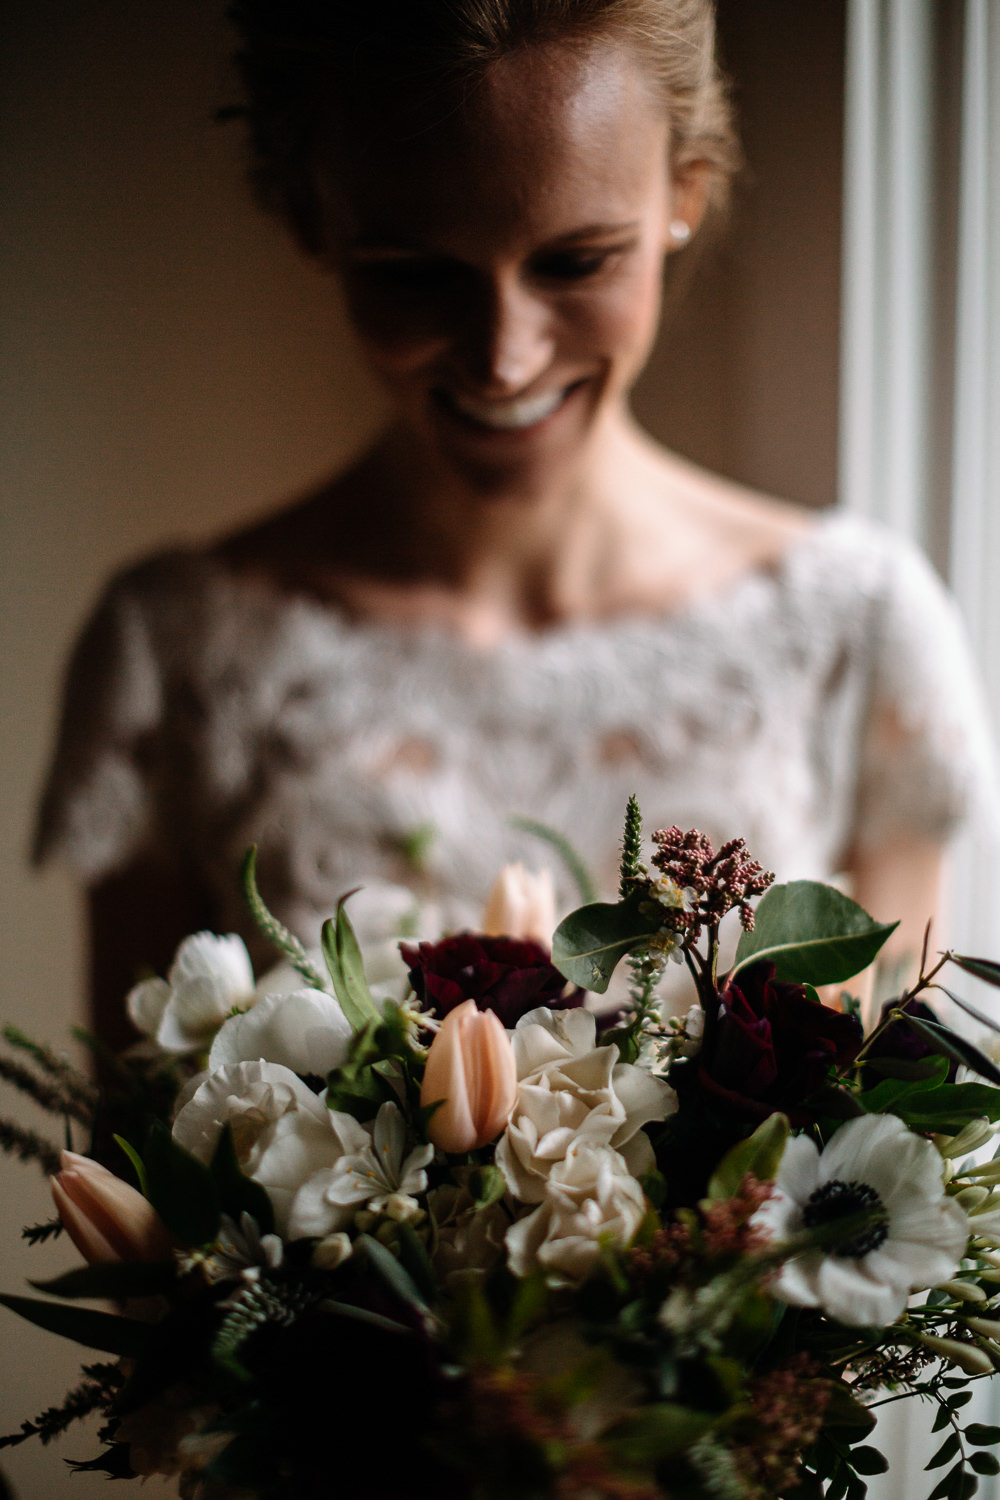 bride smiles at wedding bouquet